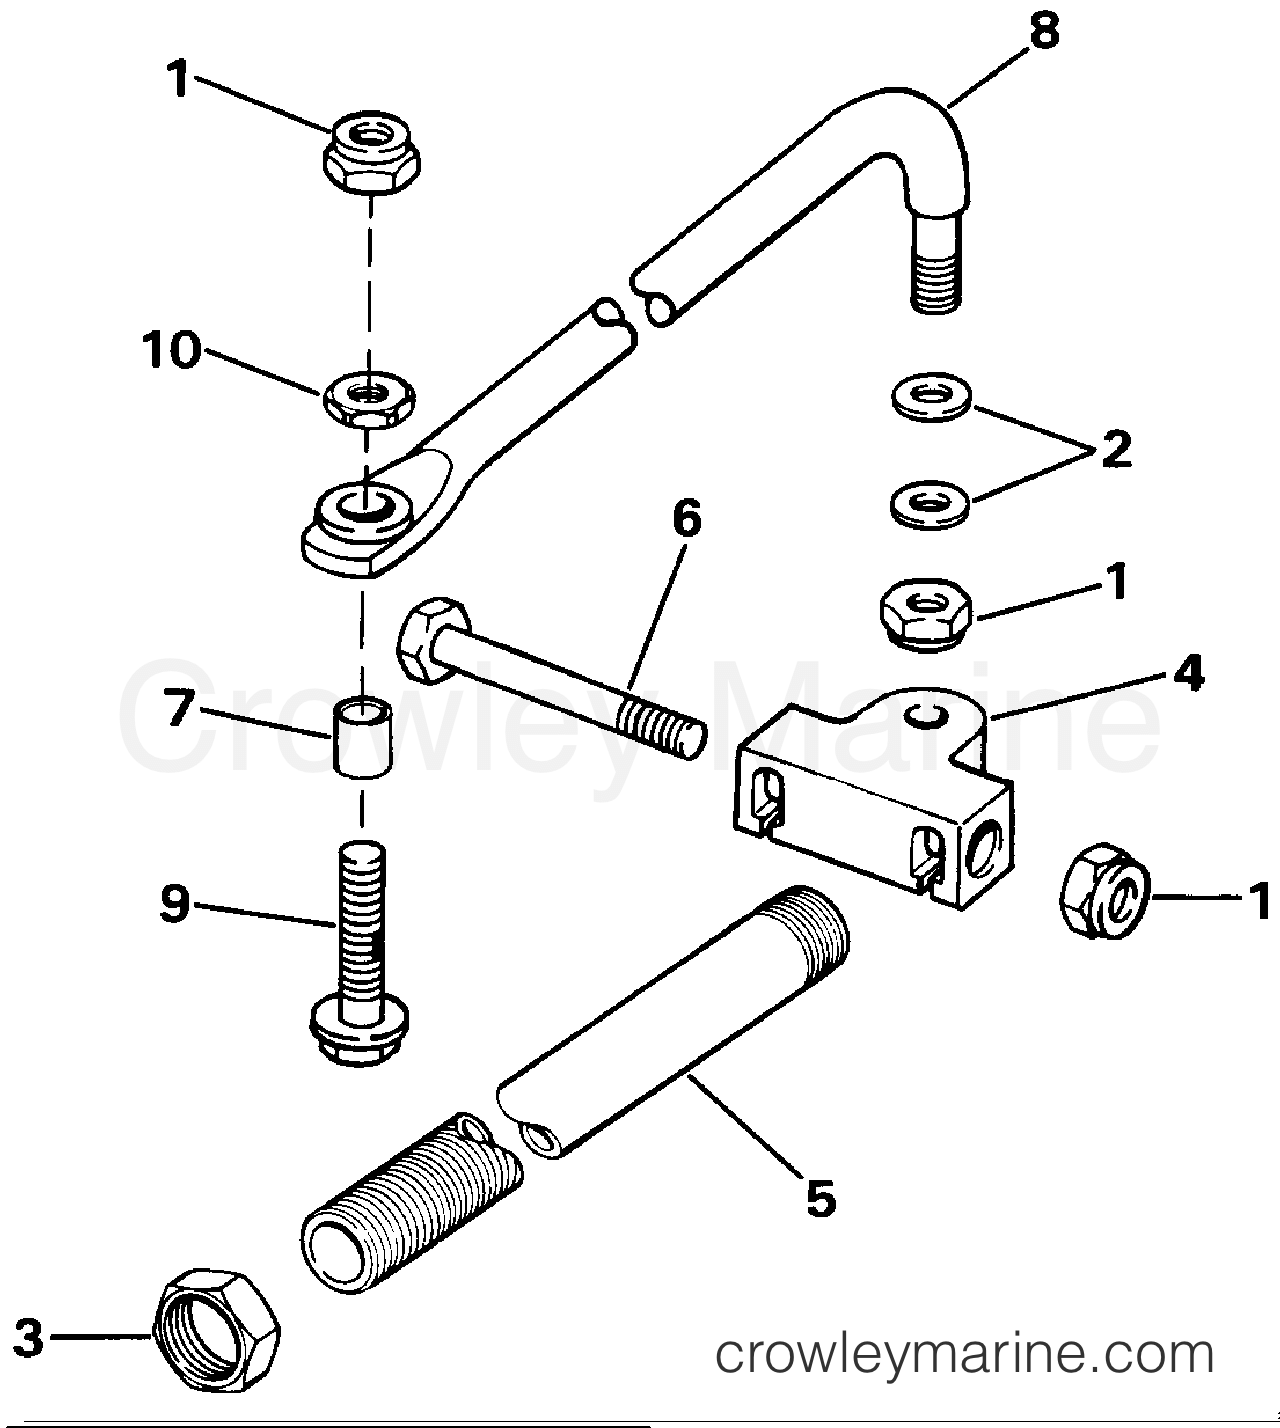 1986 Evinrude Outboards 150 - E150STLCDC DUAL CABLE STEERING CONNECTOR KIT - PARALLEL ENTRY - 200STL section